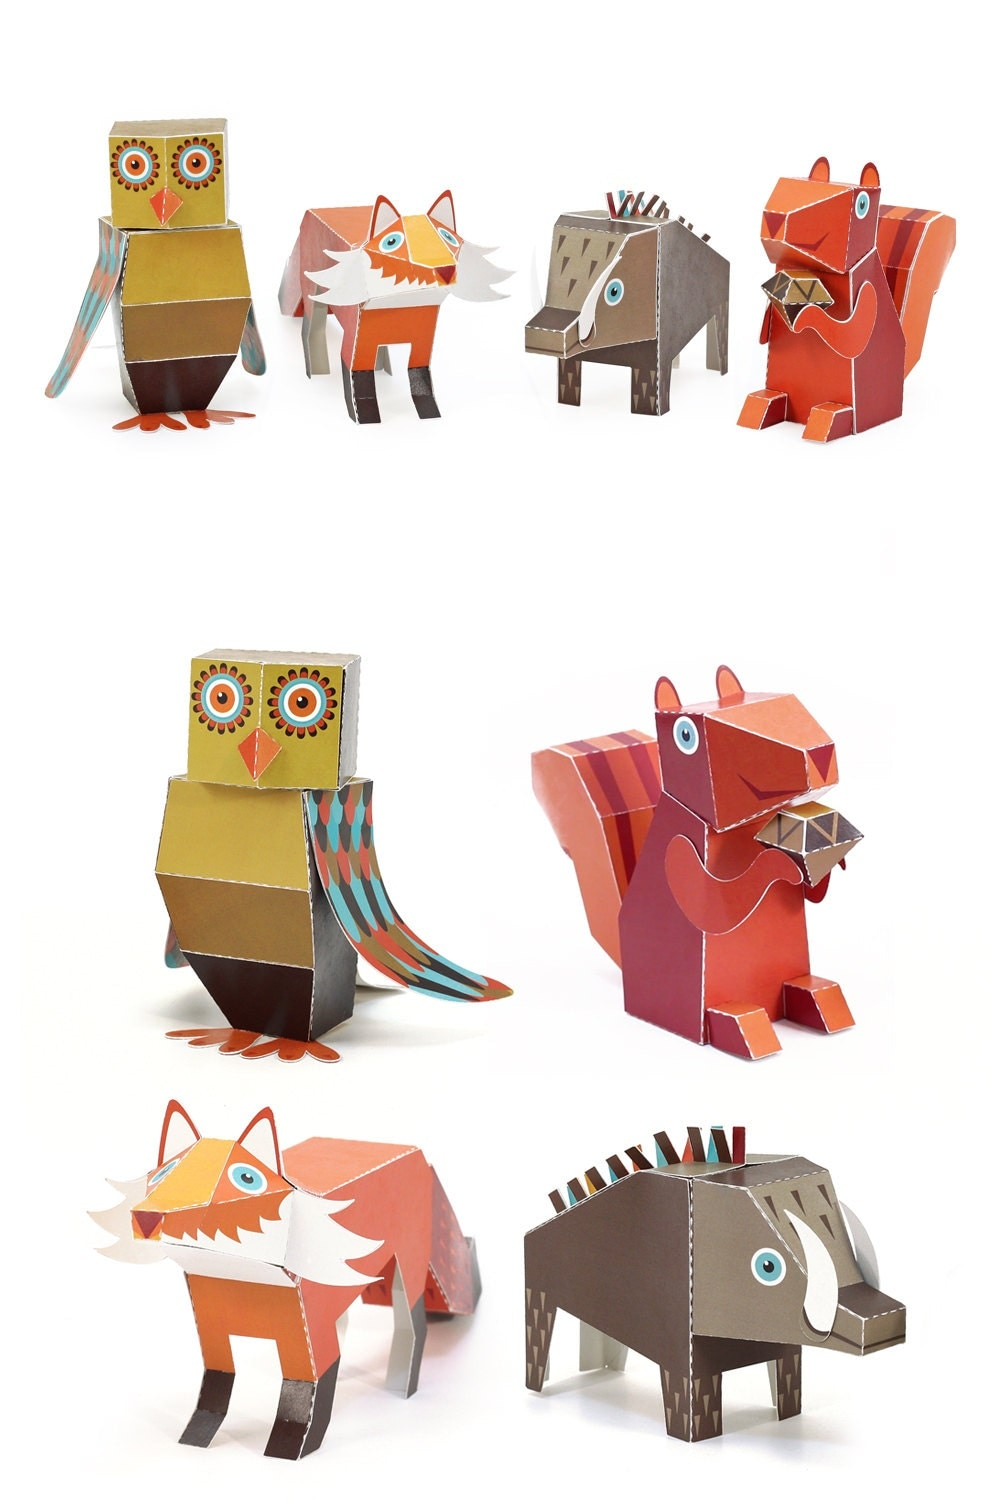 Forest animals paper toys diy paper craft kit 3d paper animals forest animals paper toys diy paper craft kit 3d paper animals 4 forest animals papercraft kids jeuxipadfo Image collections